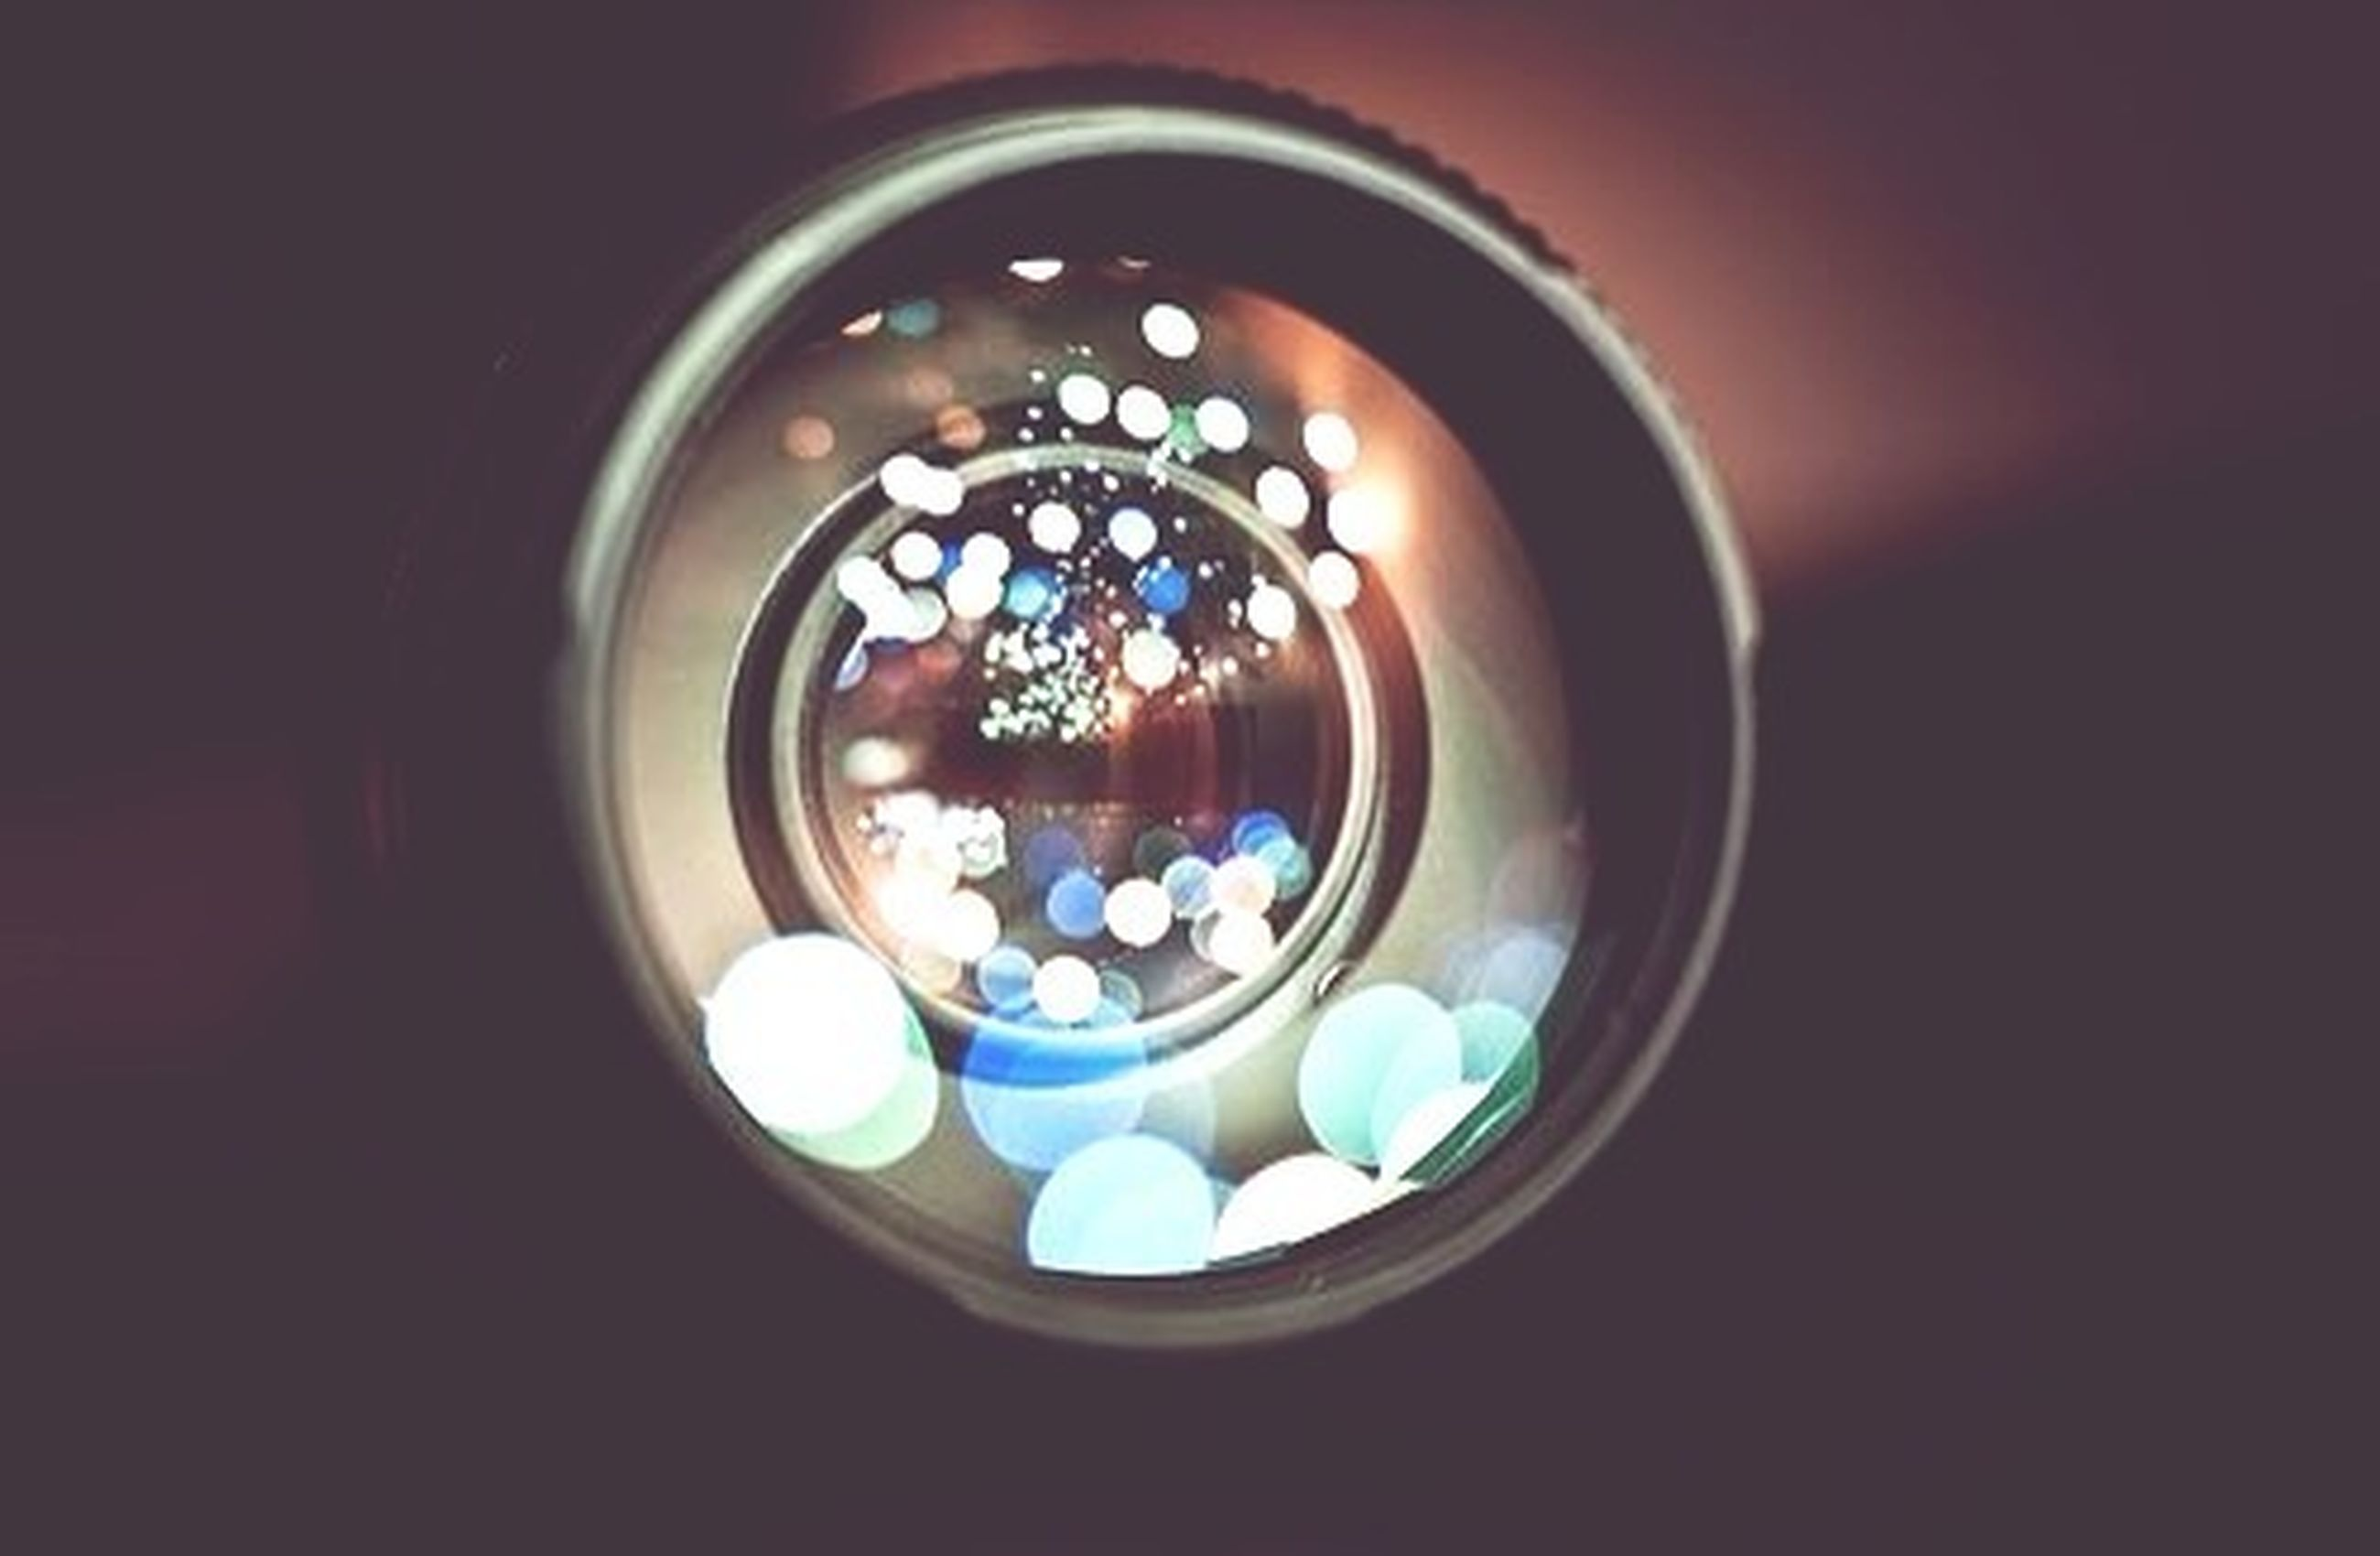 indoors, circle, glass - material, illuminated, multi colored, close-up, blue, transparent, reflection, geometric shape, no people, window, still life, high angle view, lighting equipment, decoration, table, pattern, shape, home interior